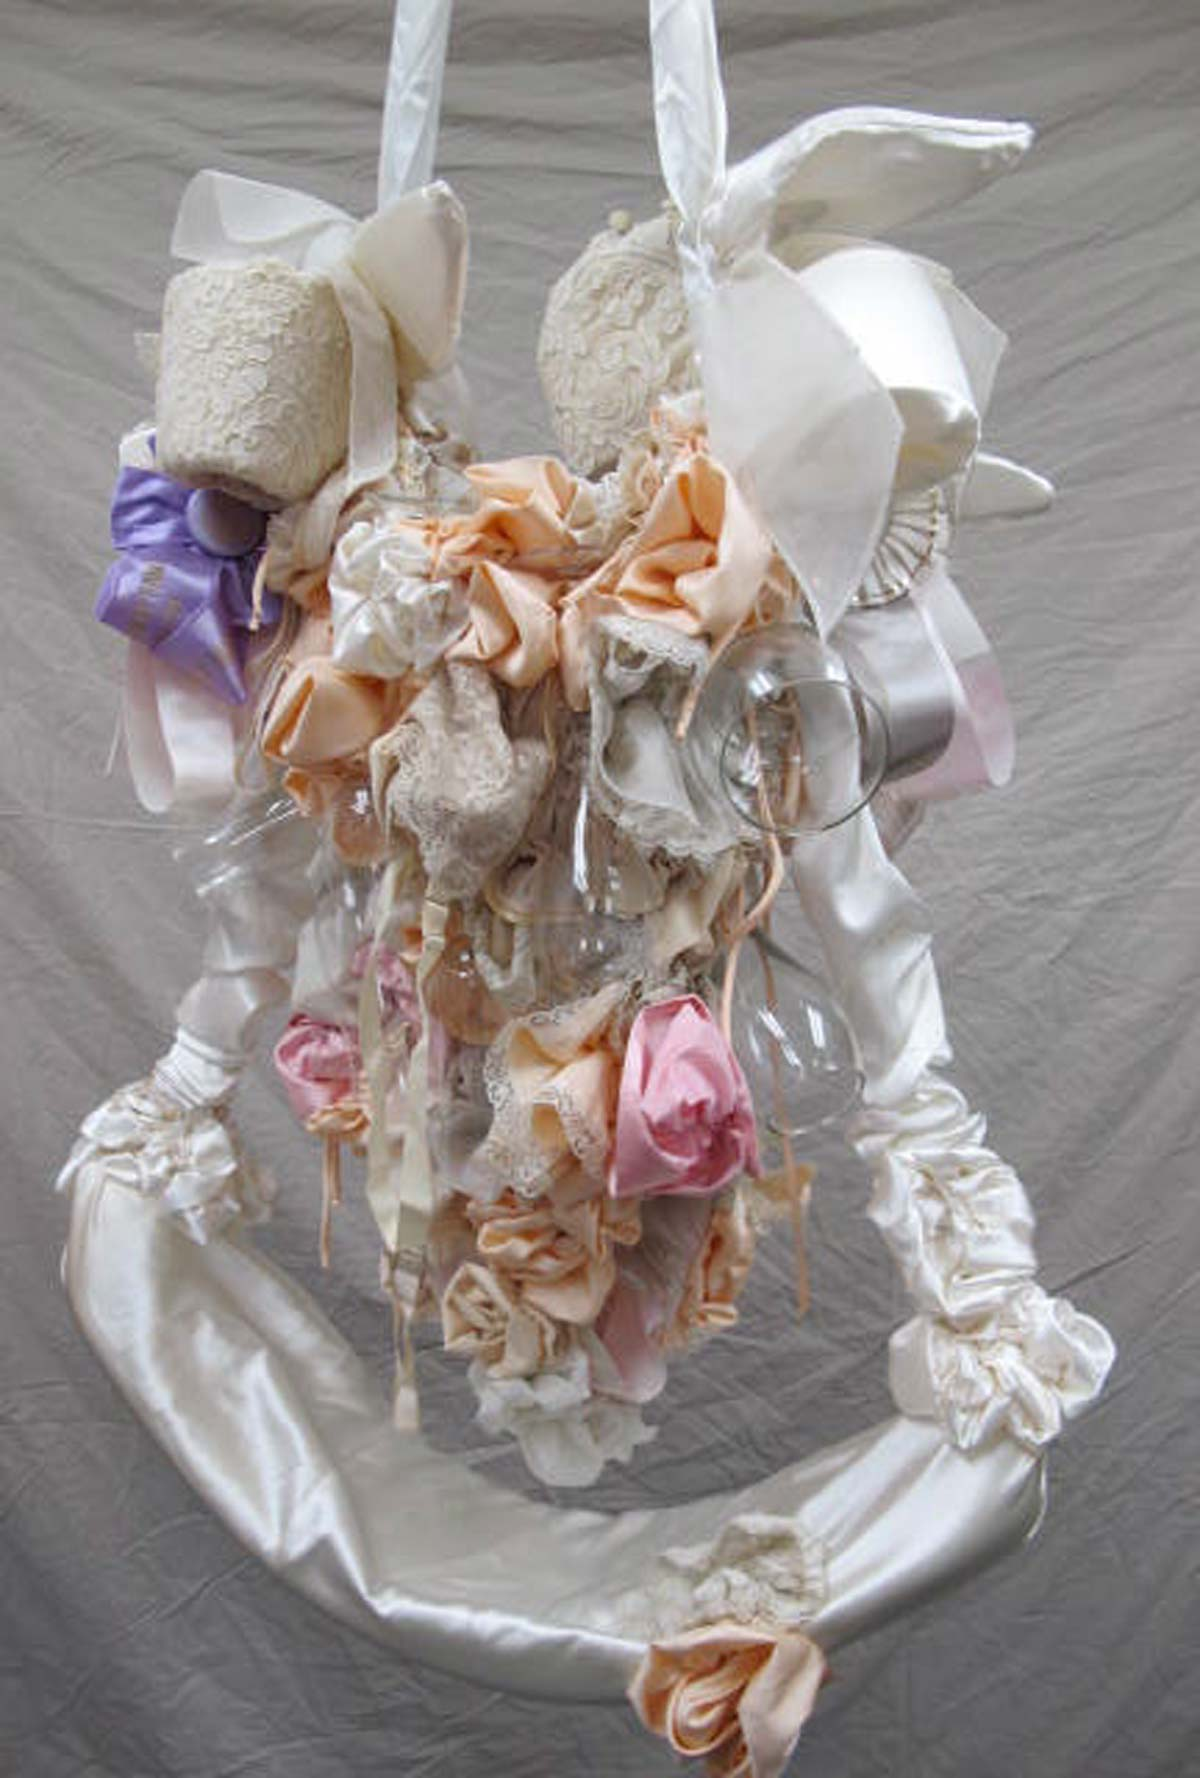 4th Place, 10x4x1', vintage lingerie and nightgowns, horse show prize ribbons, champagne flutes, wine glasses, wedding dress scraps, mixed media, 2010